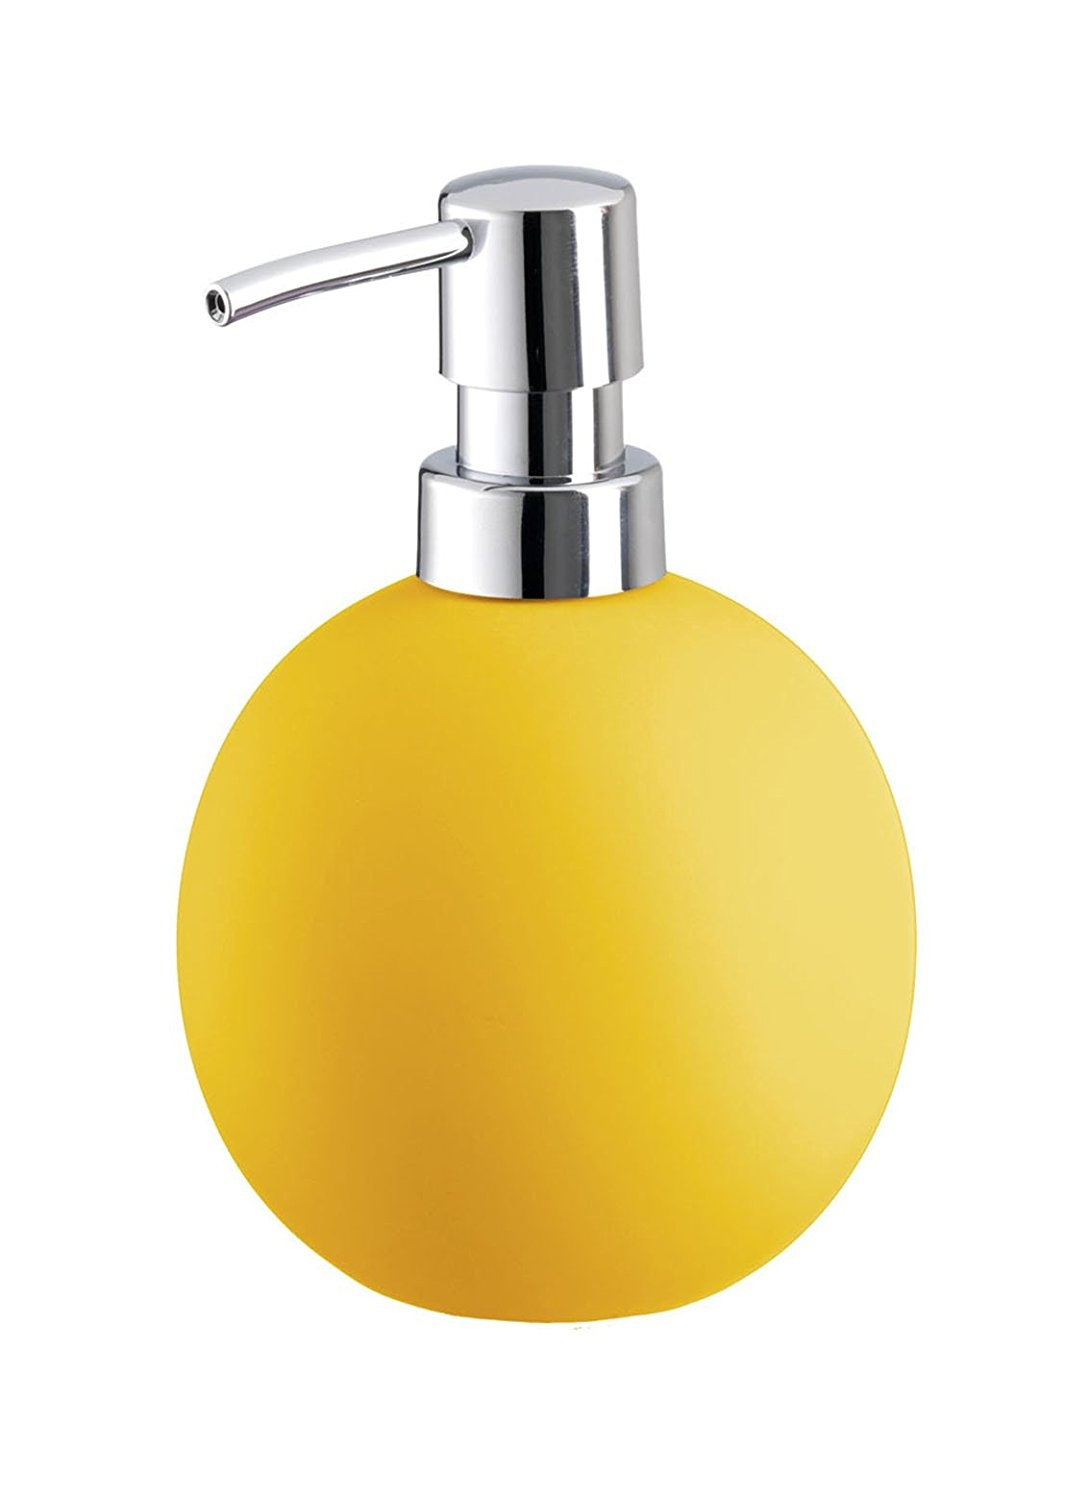 kleine wolke energy soap dispenser sunshine yellow 11street malaysia bathroom accessories. Black Bedroom Furniture Sets. Home Design Ideas